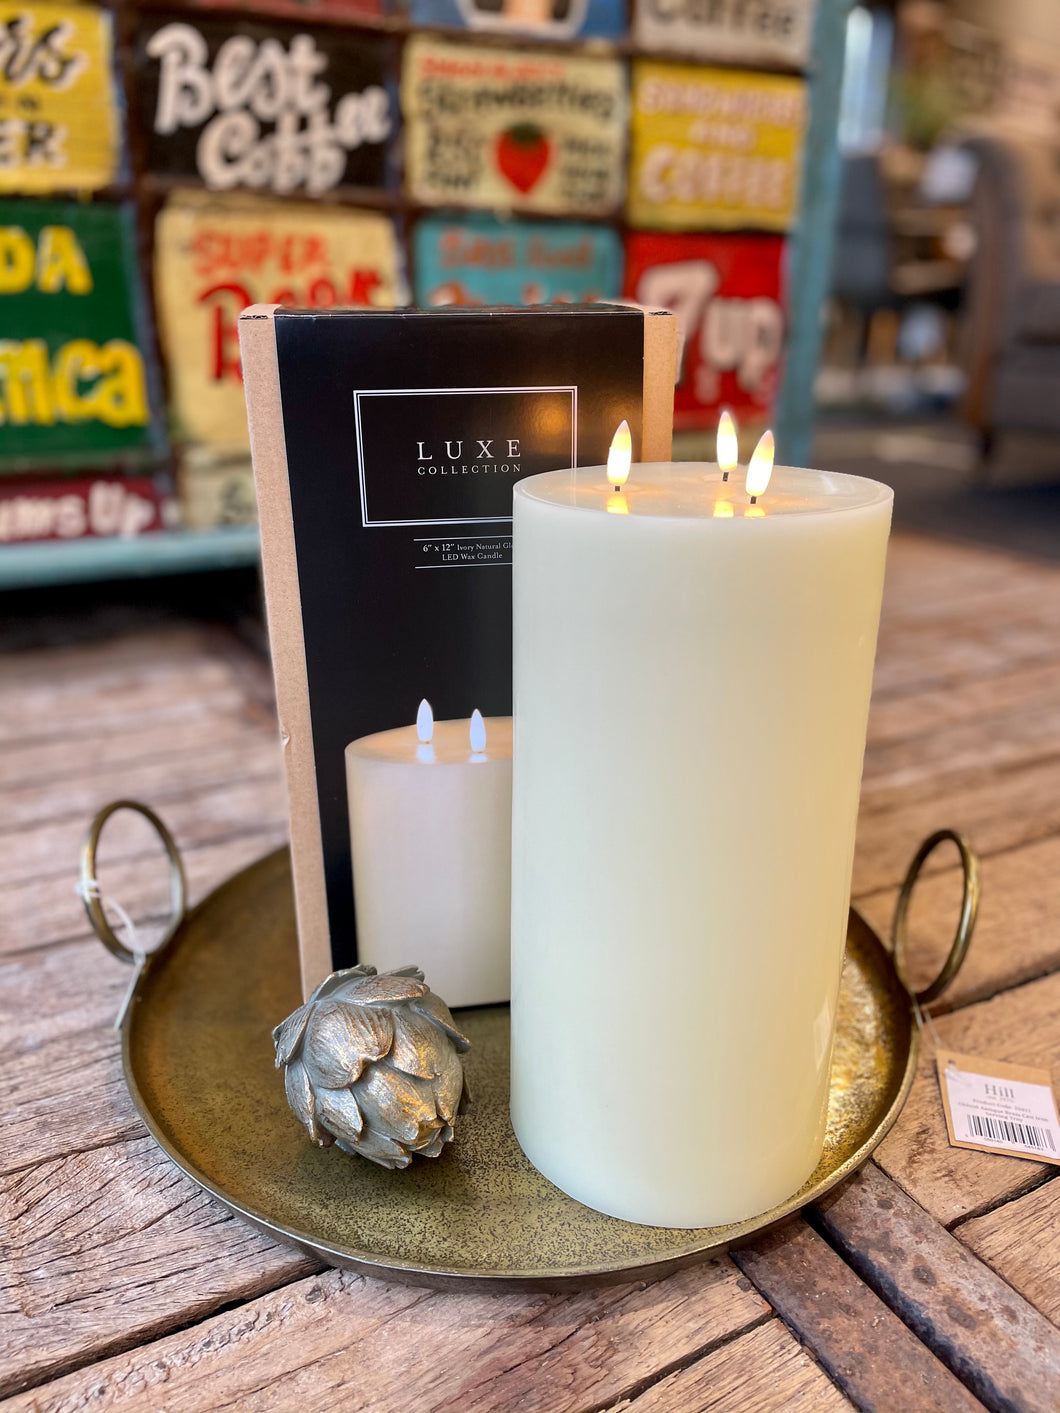 Luxe Candle in Cream 6' x 12'